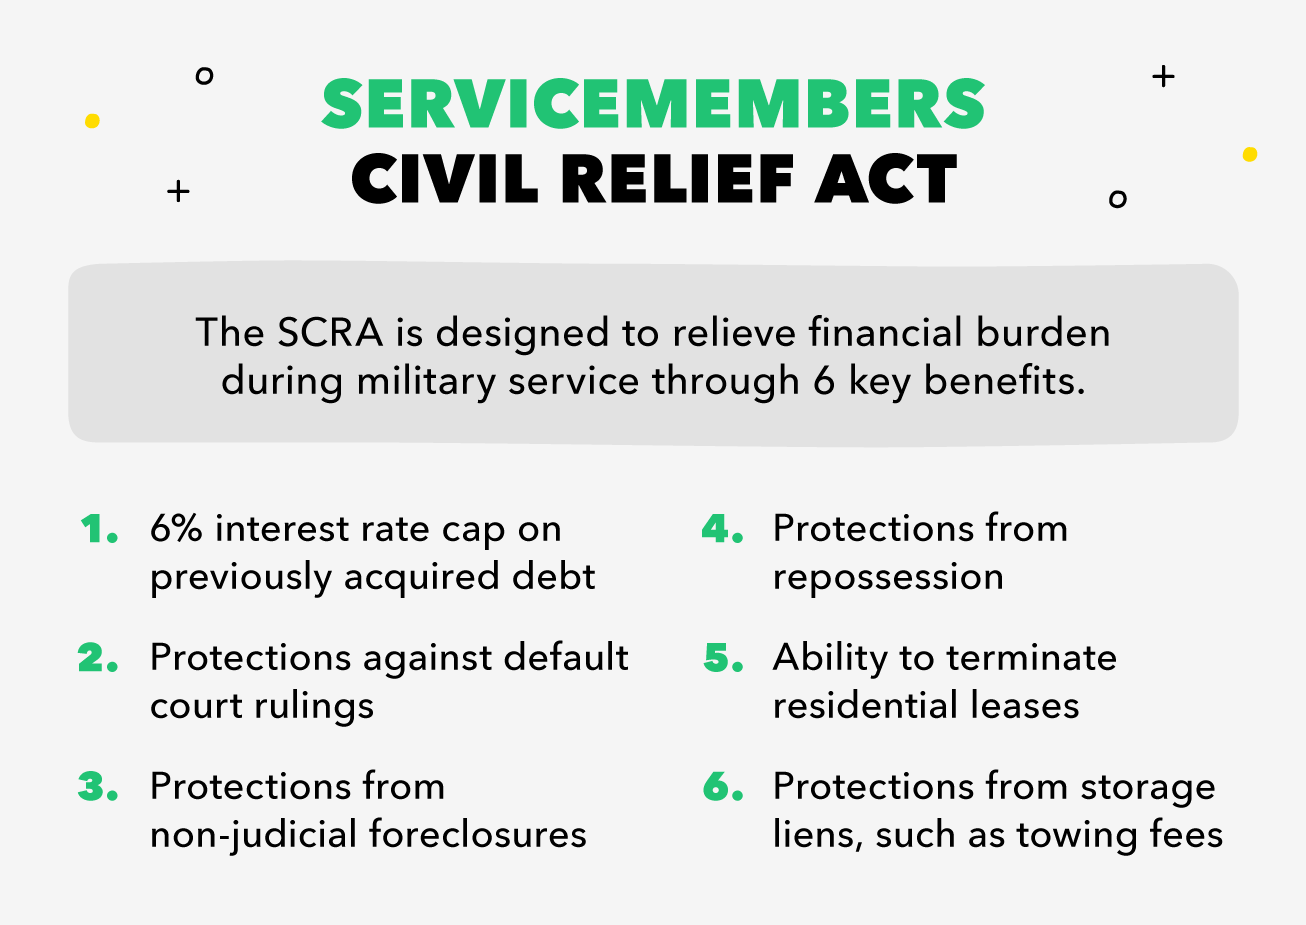 List of SCRA benefits for deploying service members.